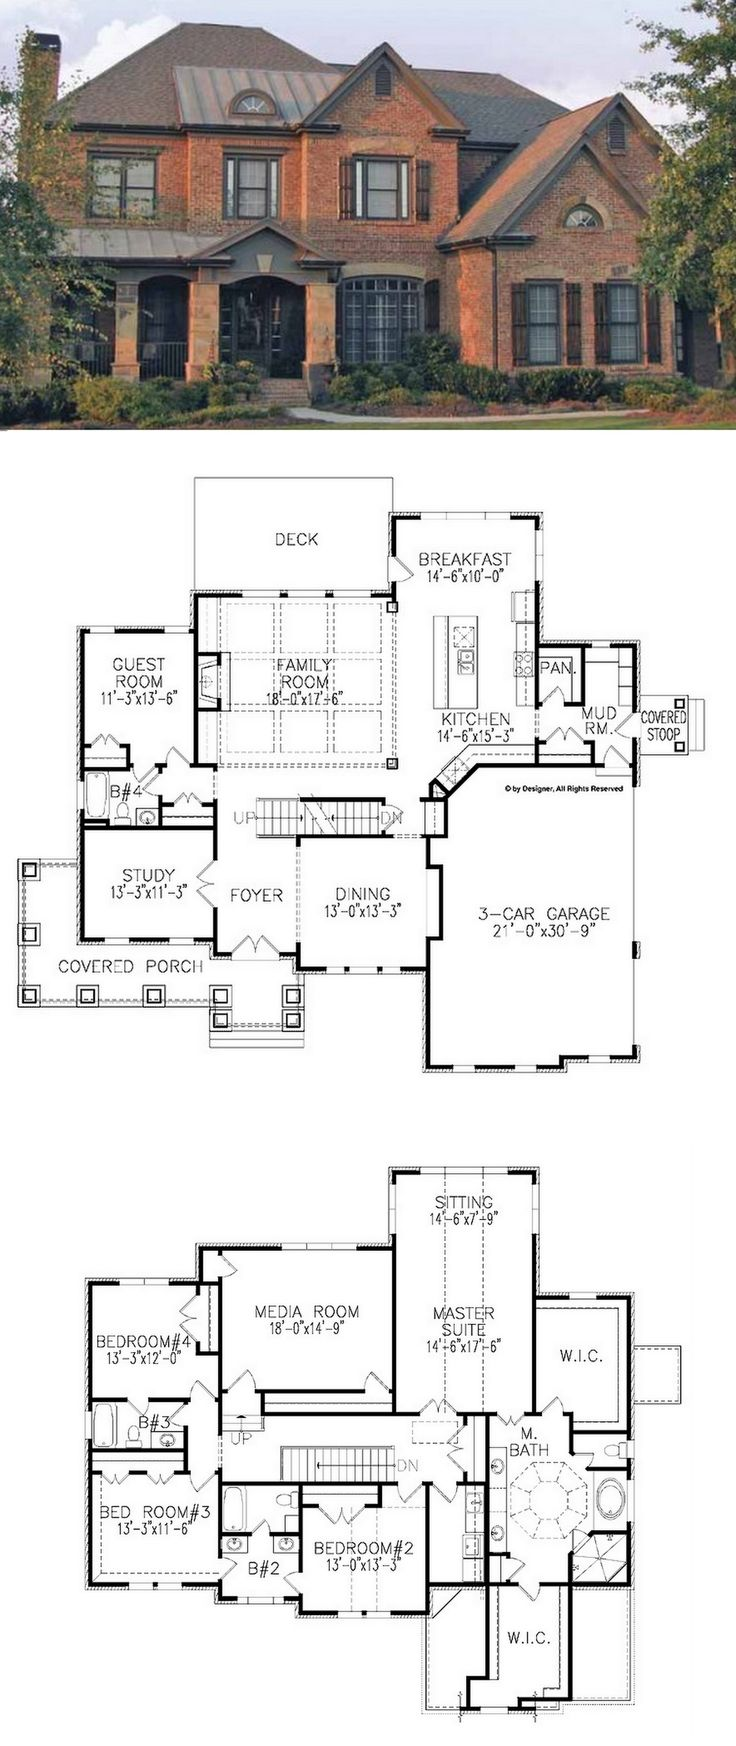 Best 25 5 bedroom house plans ideas only on pinterest 4 for 5 bedroom house designs